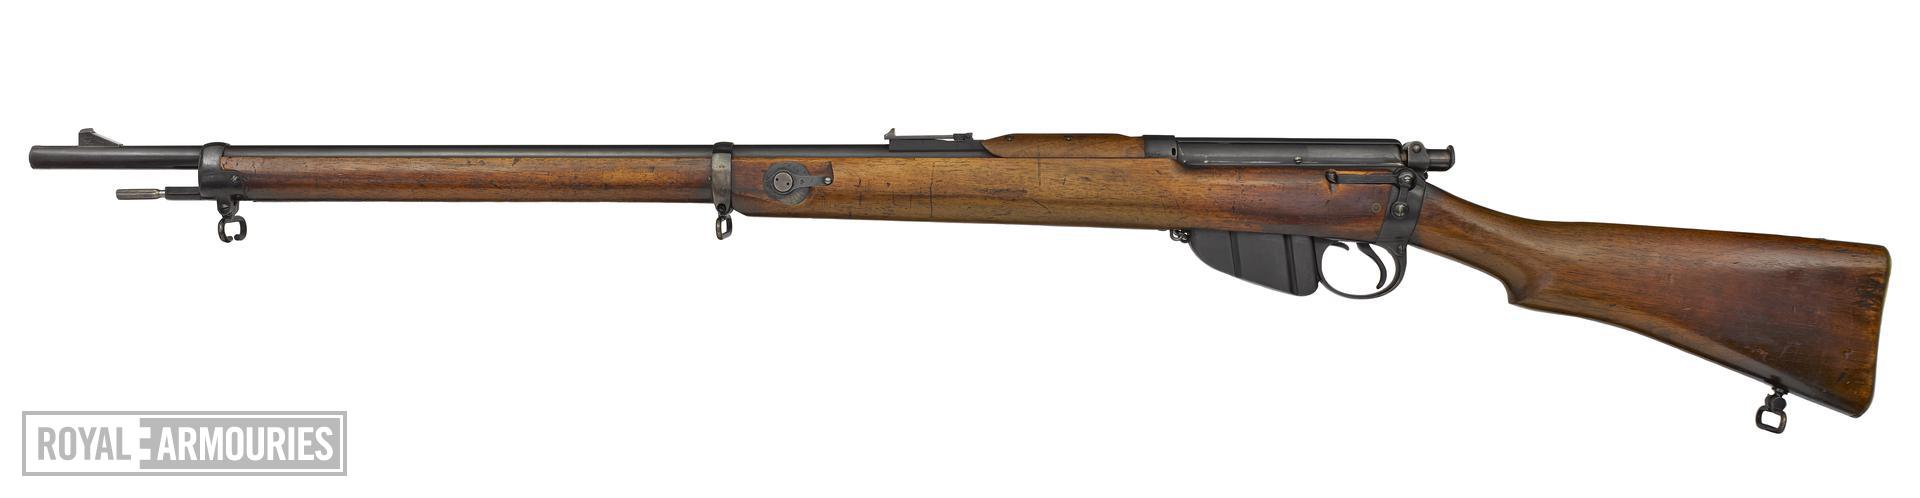 Lee Enfield Mk 1 centrefire bolt action rifle, Britain, 1895, serial number 1, sealed pattern